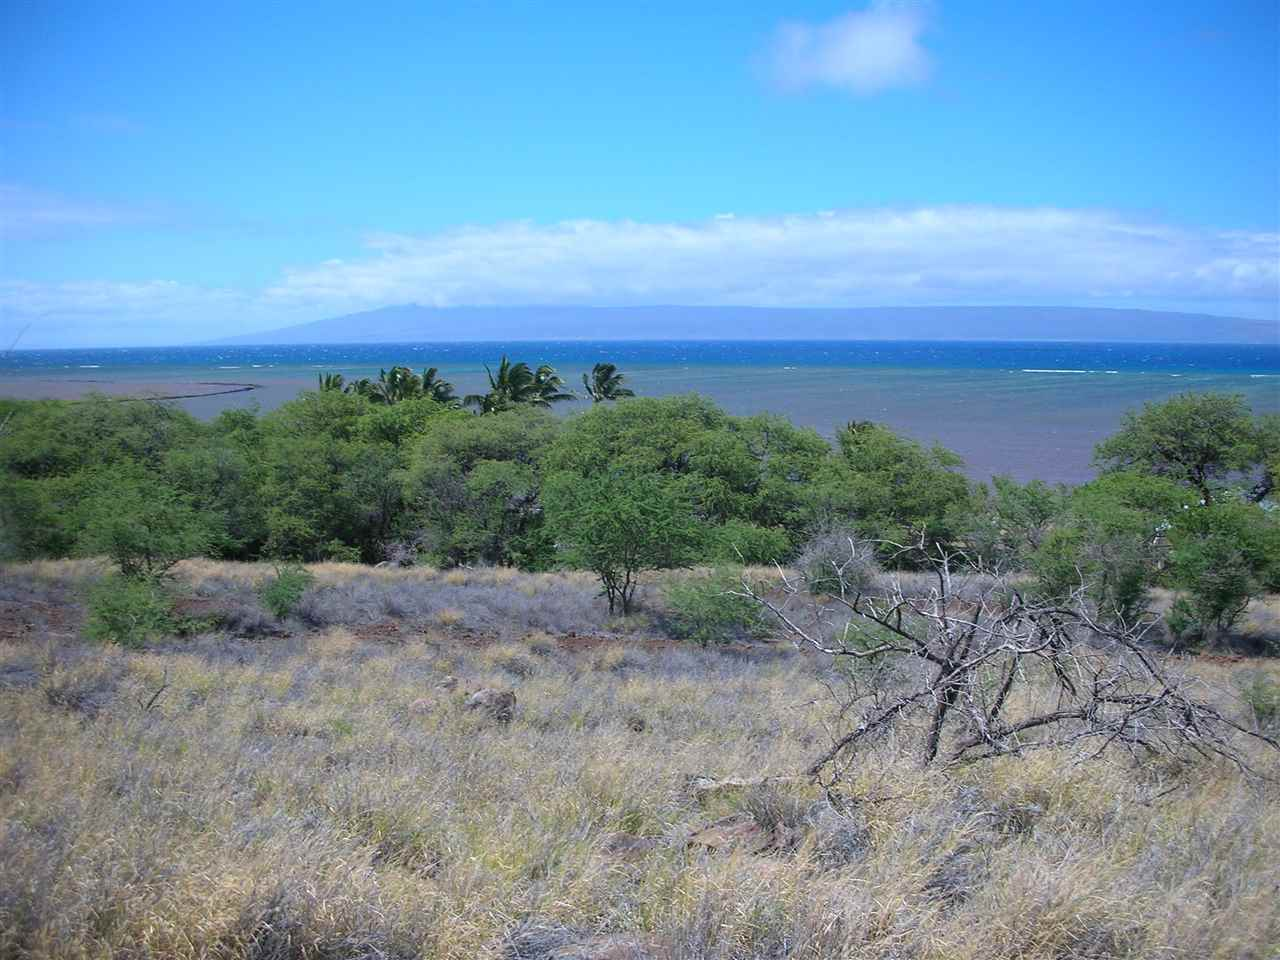 Enjoy stunning whitewater ocean views of year-round sunsets, whales in season, Lanai & Maui from this 2 acre lot in Kawela Planation III. With a great location right across from oceanfront One Alii Park, just a few minutes from Hotel Molokai & Kaunakakai Town, and 20 minutes to the airport, some of Molokai's most beautiful homes are on Makaiki Rd. This is the closest lot to the ocean; ready to build on with a leveled homesite, gentle slope, & installed water meter. Kawela owners share an oceanfront park & over 5000 pristine  mountainside acres. If you really want to get away from it all, Molokai is like going 70 years back in time to the Old Hawaii--perfect weather, no traffic (no traffic lights!), no buildings taller than a palm tree & few tourists..Say When!